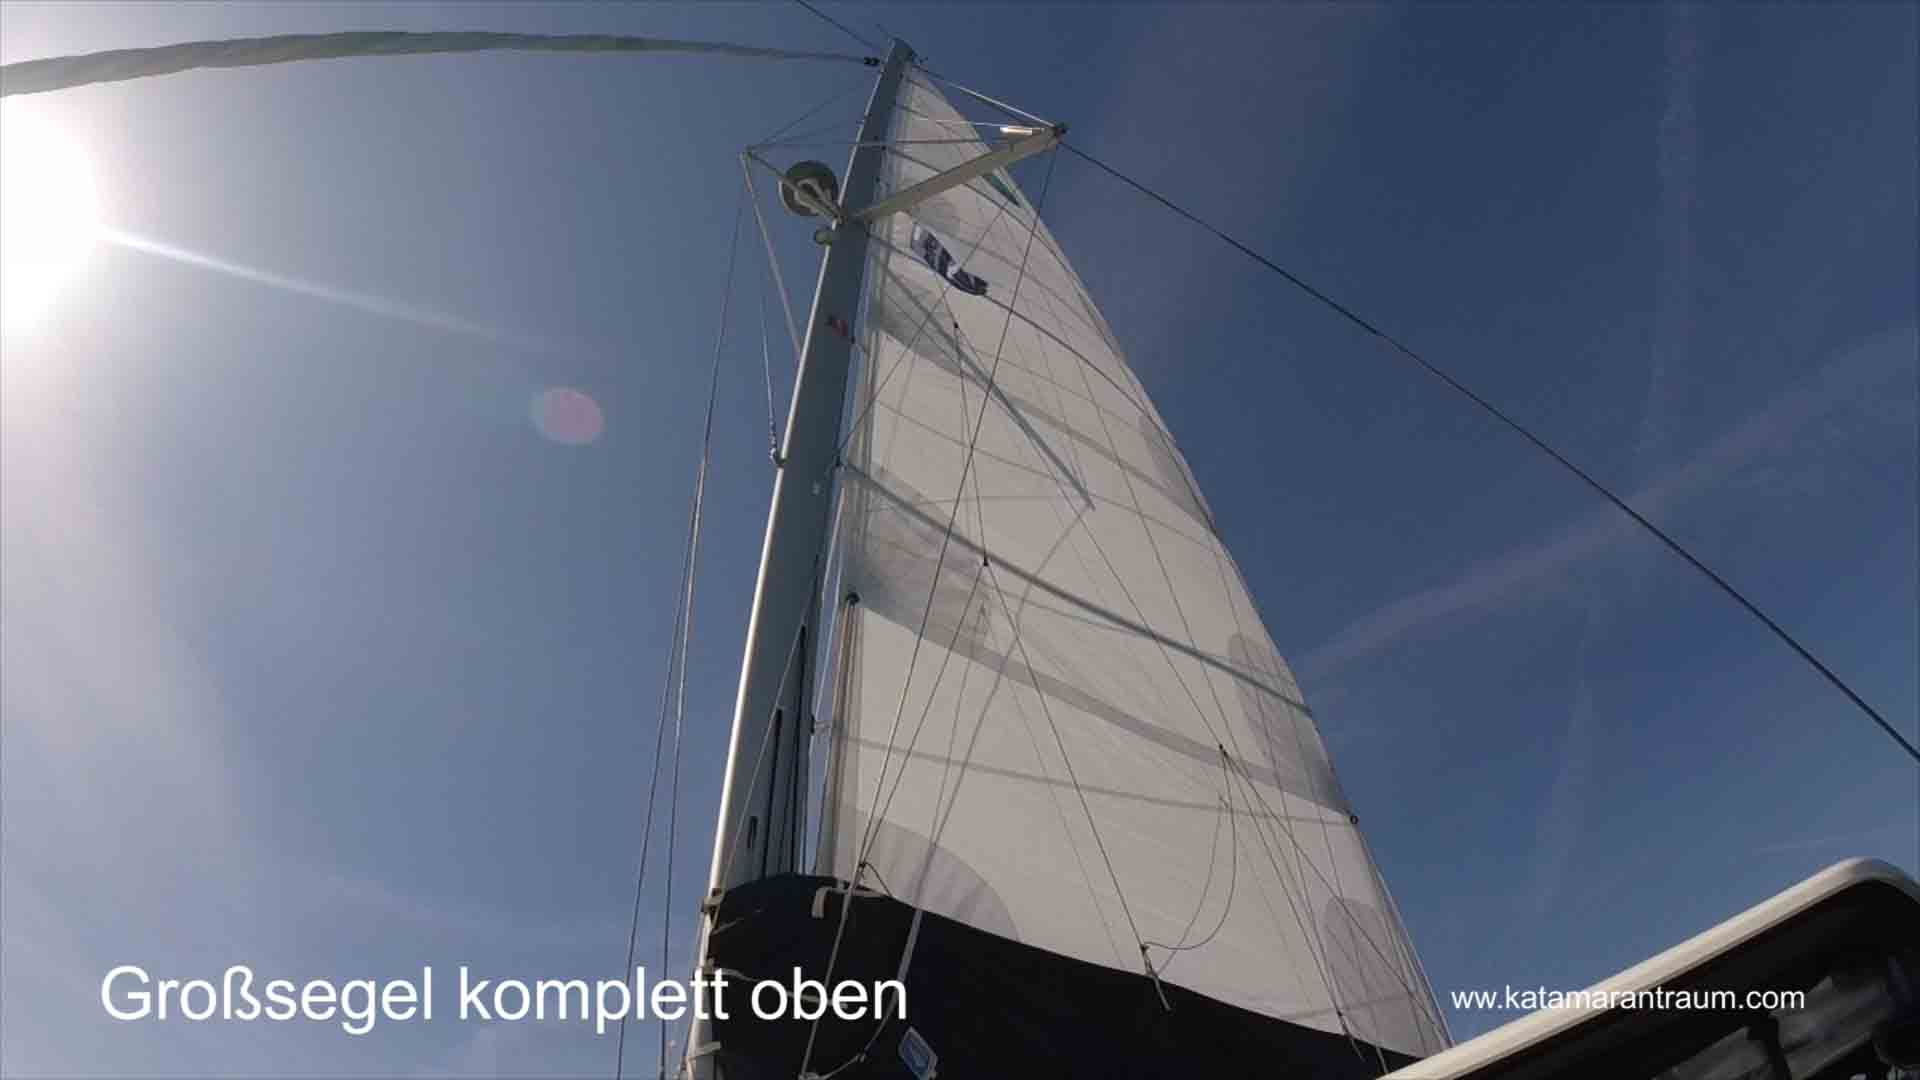 Sailing in catamaran training - sailing is also practiced